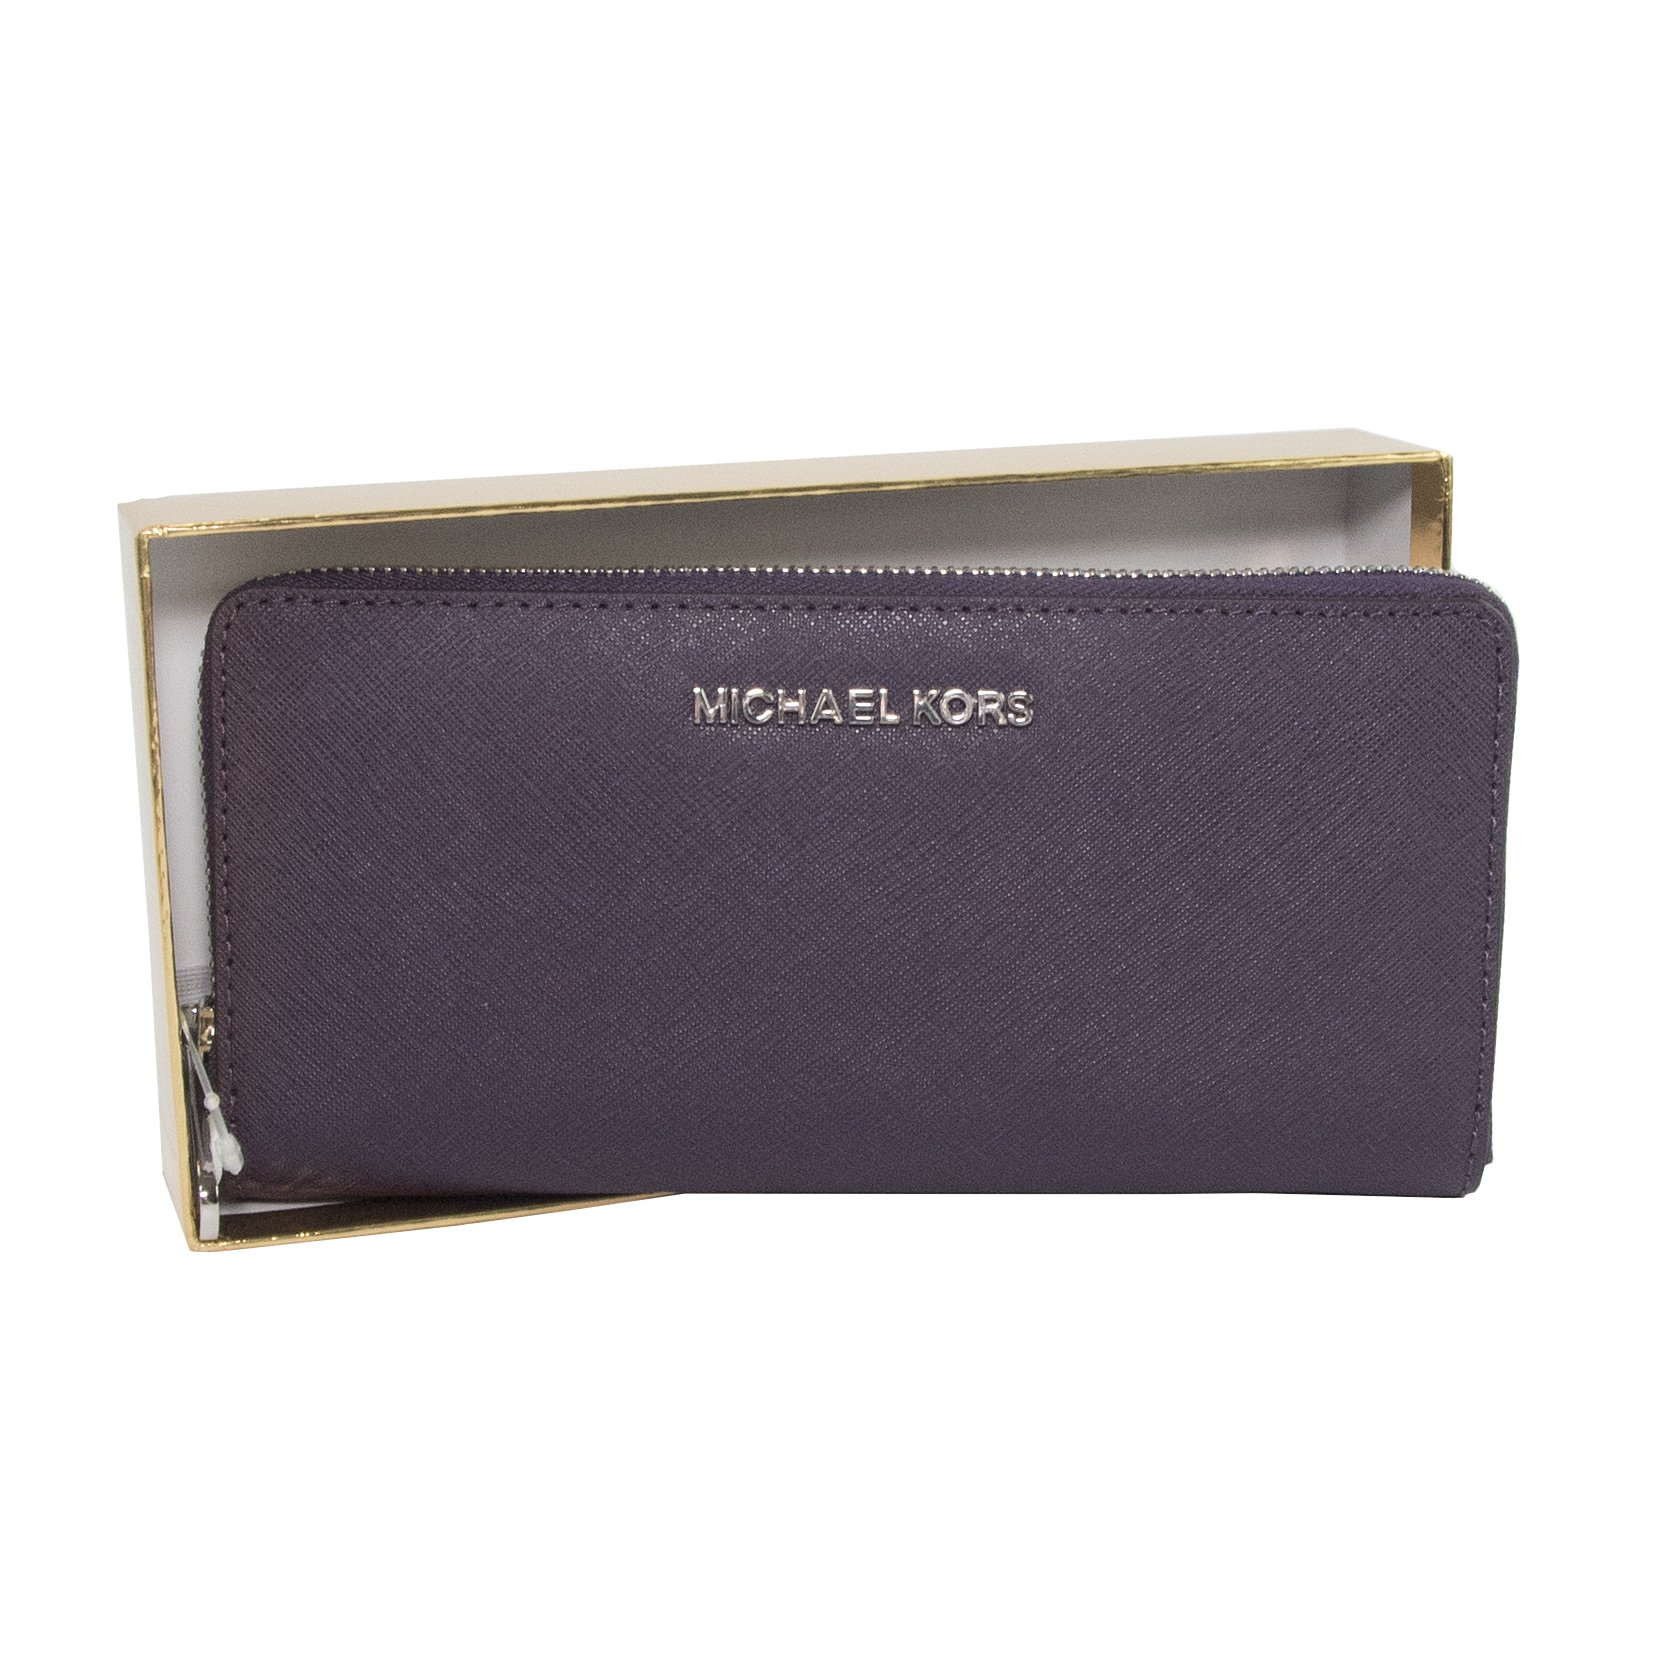 Michael Kors Deep Purple Saffiano Leather Boxed Zip Around Continental Travel Wallet by Michael Kors